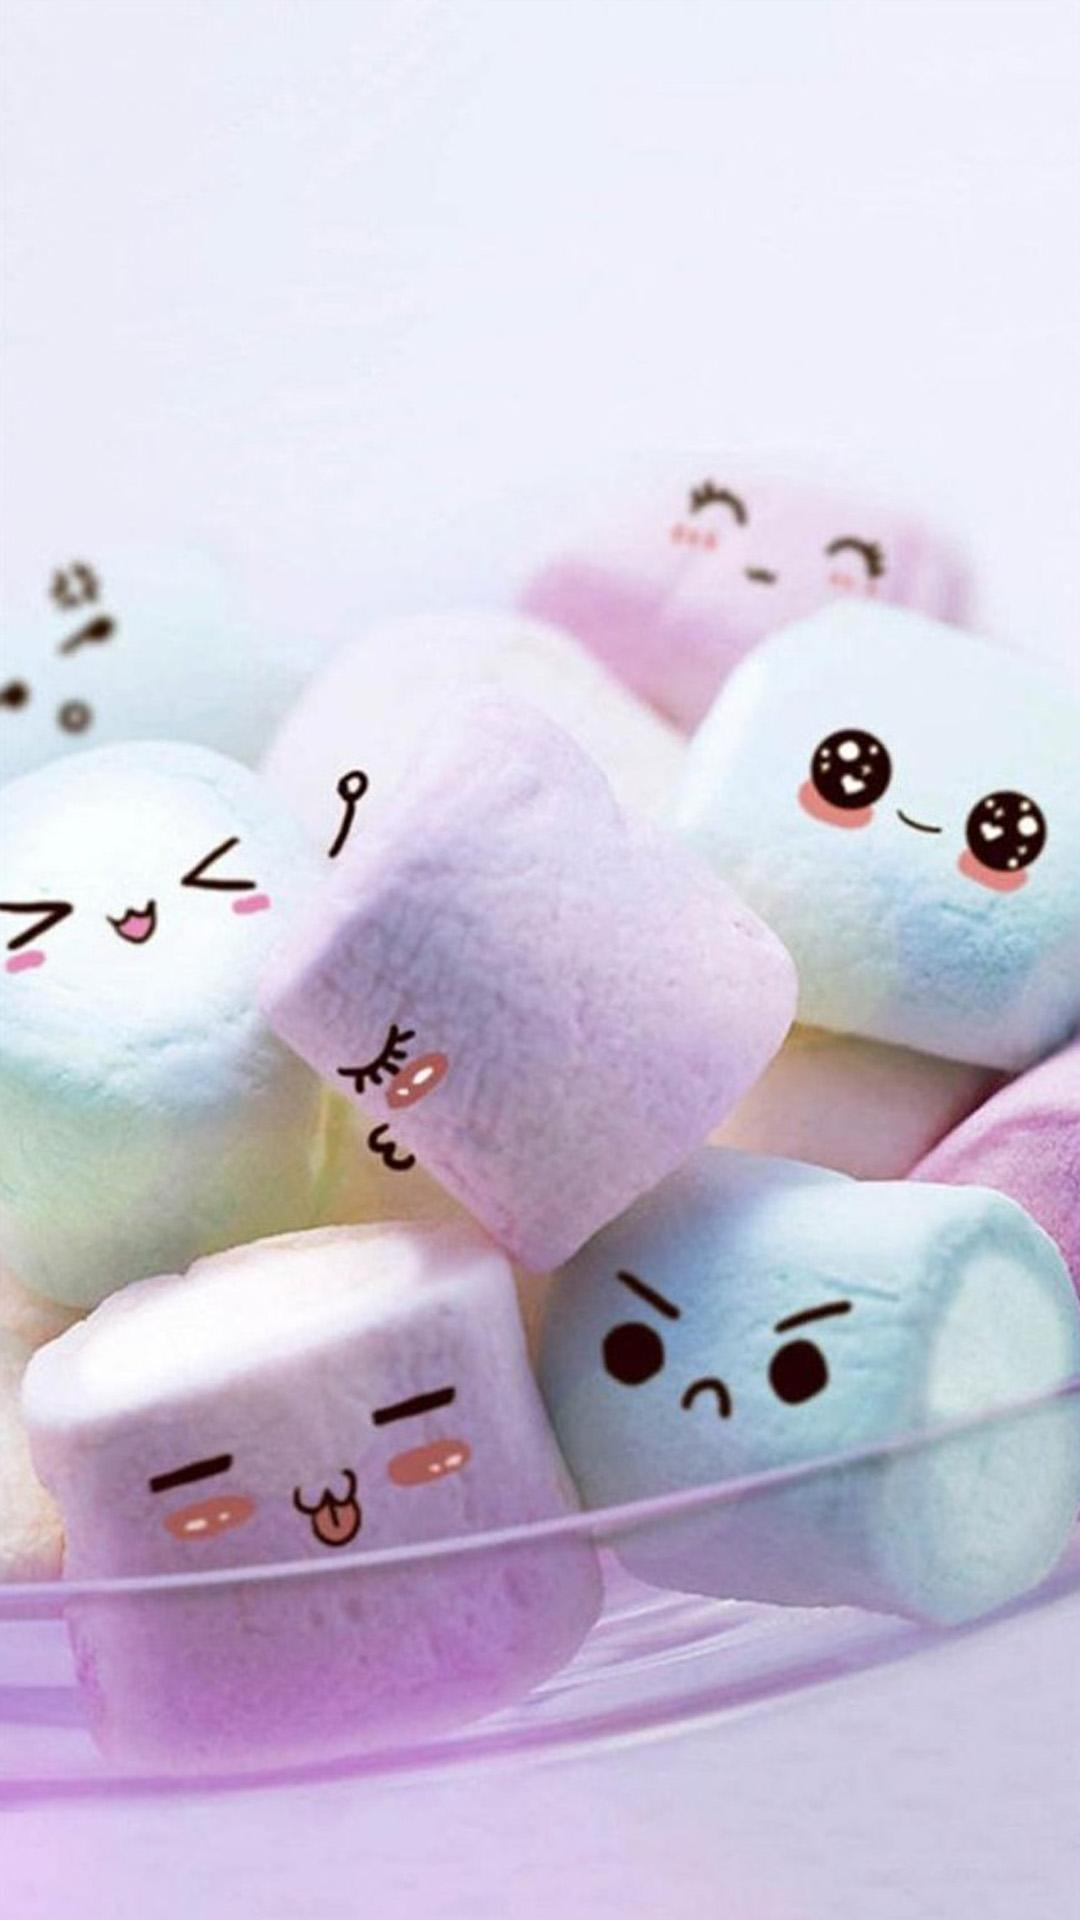 Cute Wallpaper Hd For Android Apk Download